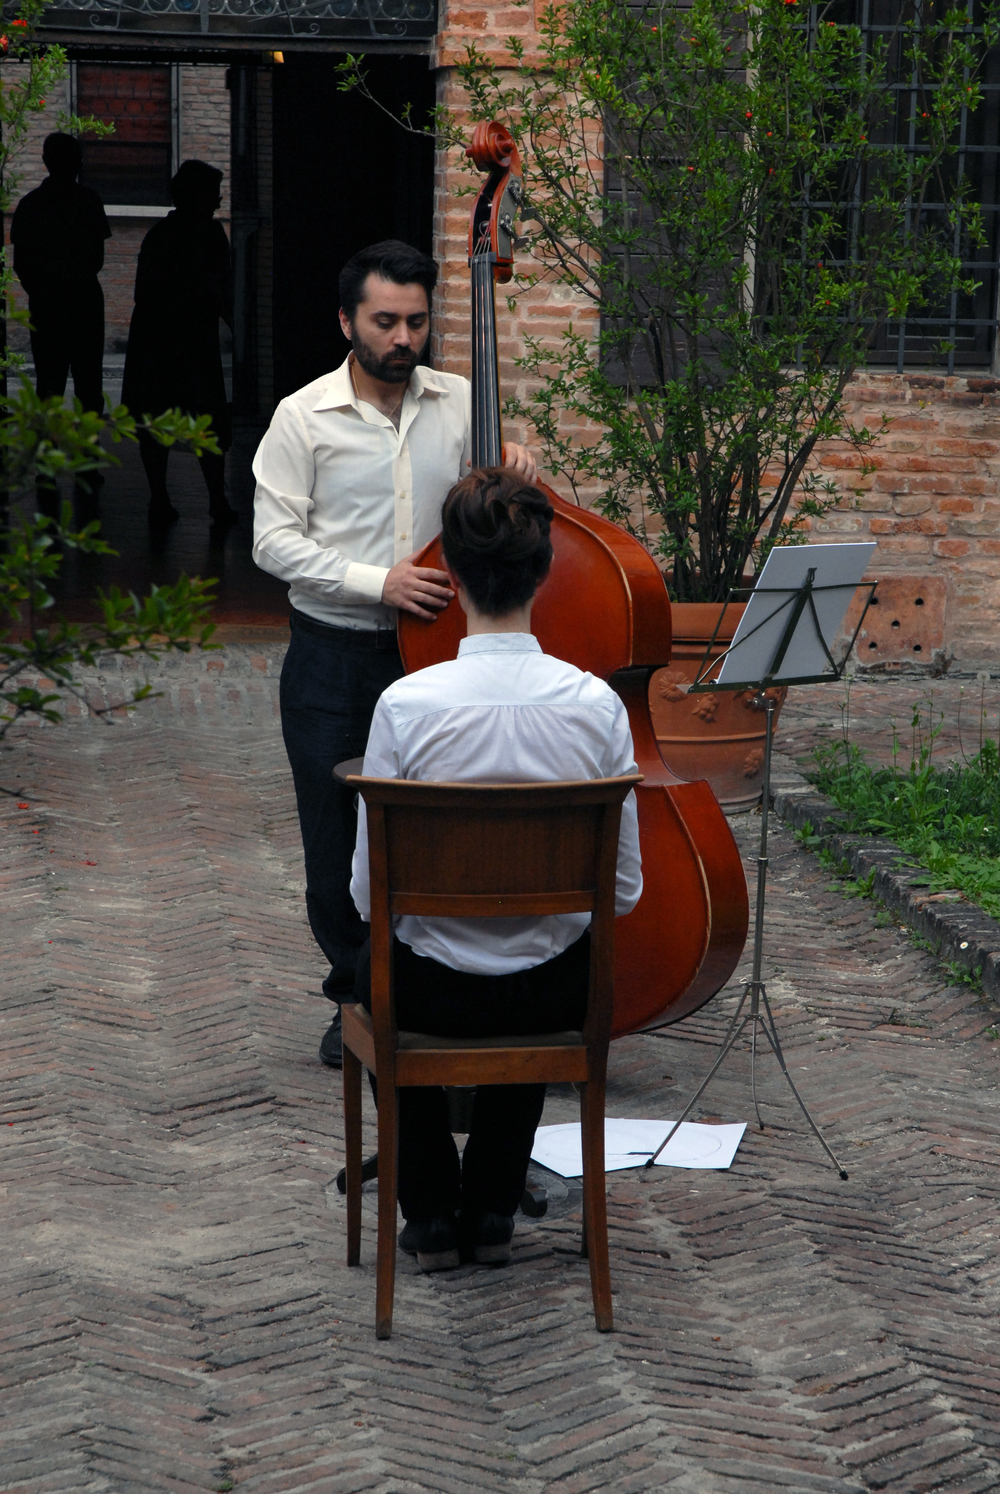 Twelve movements for hourglass and contrabass / Dodici movimenti per clepsamia e contrabbasso, 2009-2011. Photographic documentation by Marzia Bedotti, June 17, 2011. Contrabass: Salvatore Lauriola. Museum Ariosto's House, Ferrara, Italy